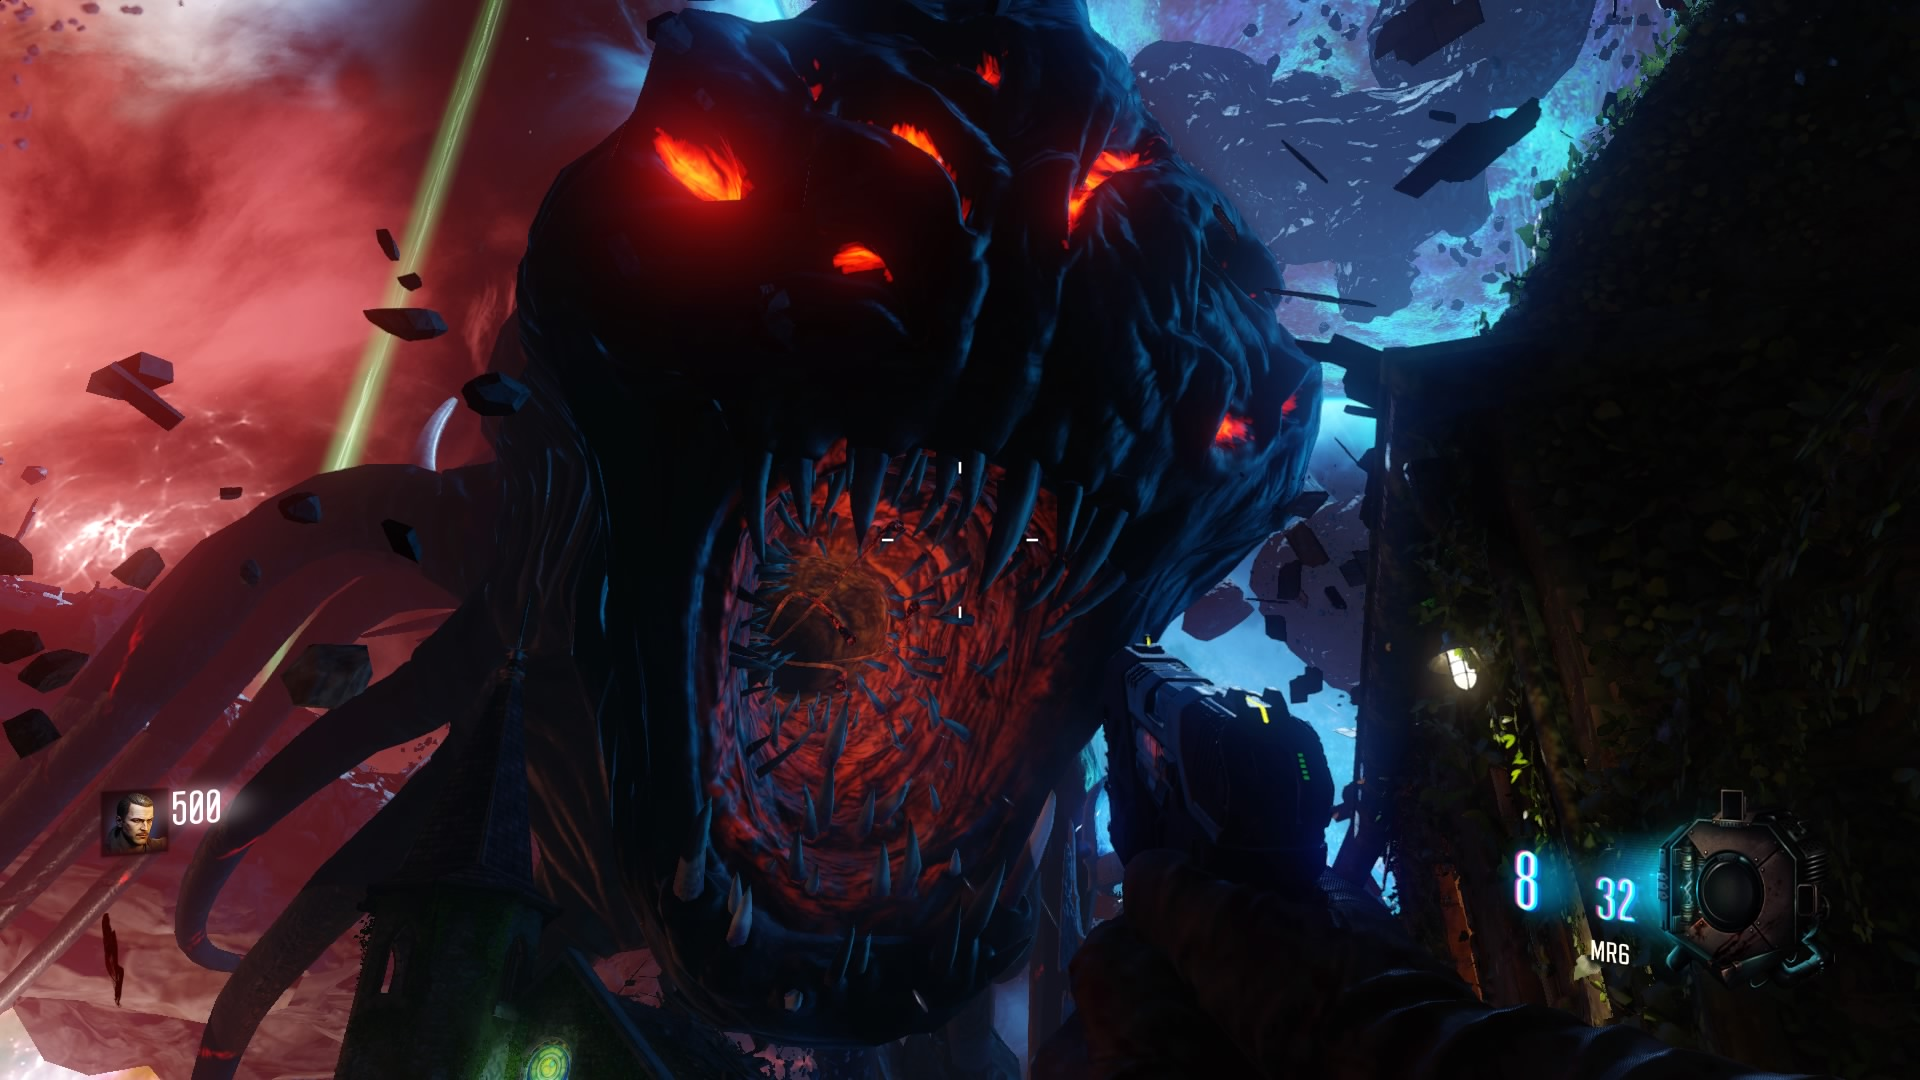 Black Ops 3 Revelations Enter An Apothicon Unlock The